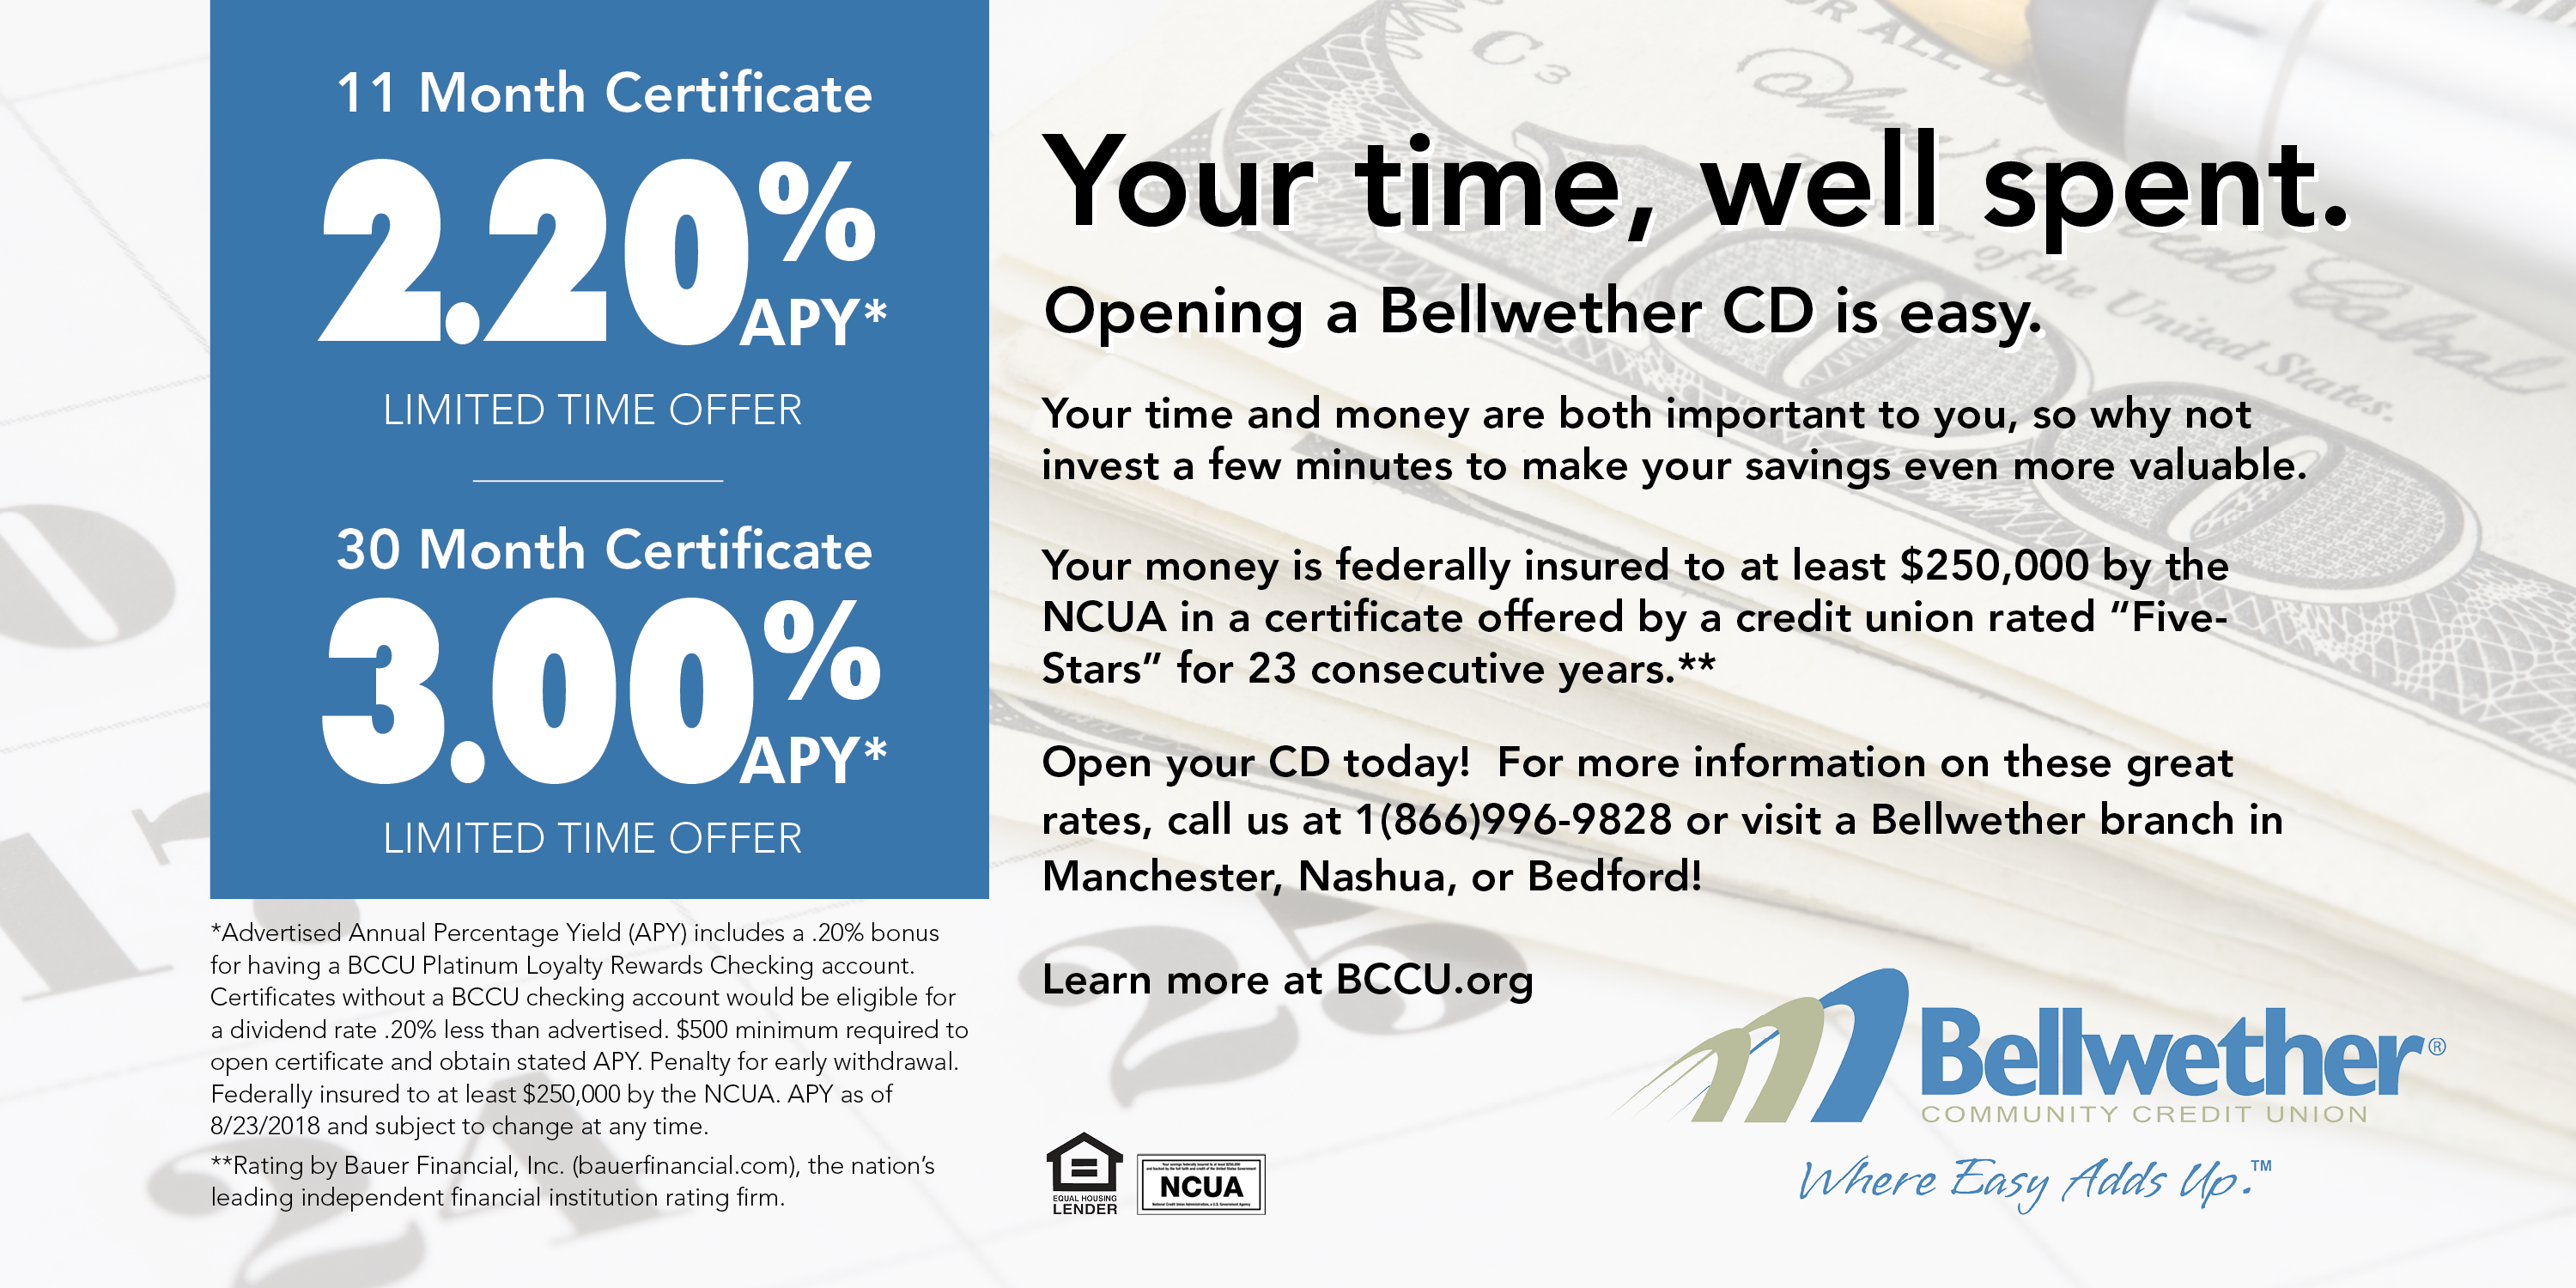 Certificates Iras Bellwether Community Credit Union